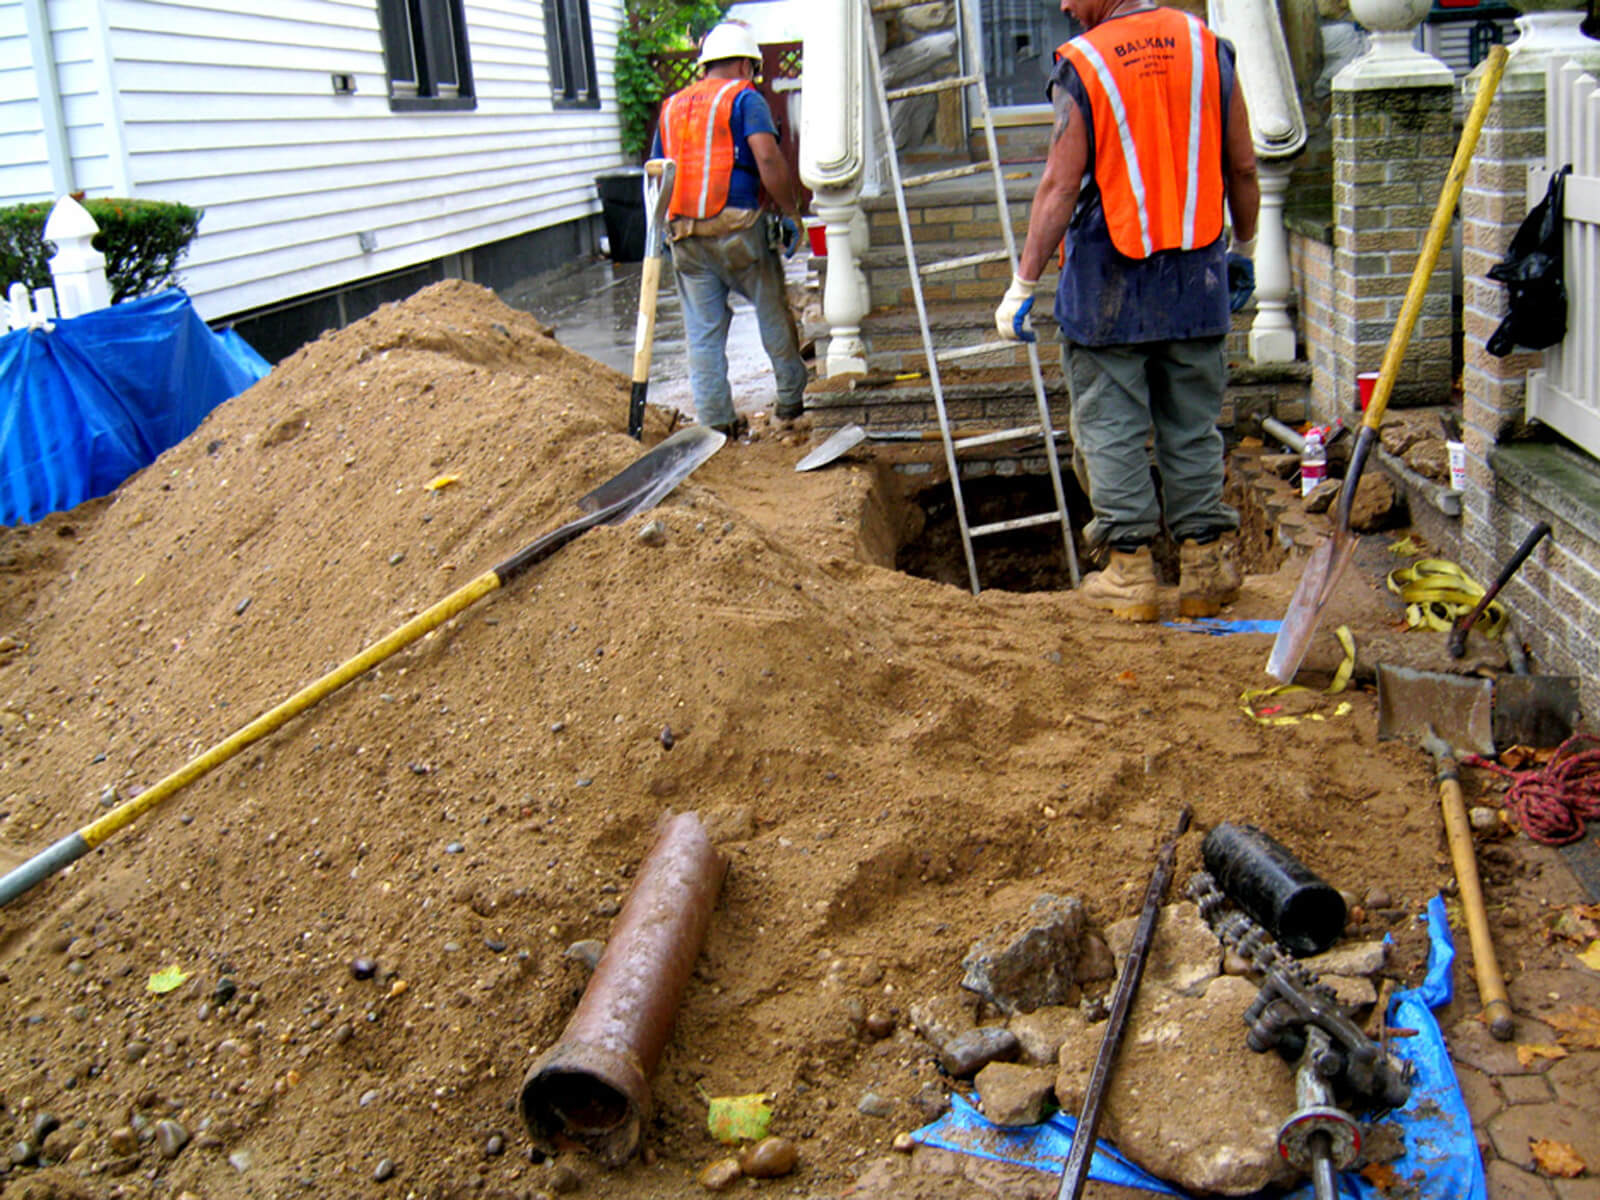 Jonesboro Septic Tank Services, Installation, & Repairs Header Image-We offer Septic Service & Repairs, Septic Tank Installations, Septic Tank Cleaning, Commercial, Septic System, Drain Cleaning, Line Snaking, Portable Toilet, Grease Trap Pumping & Cleaning, Septic Tank Pumping, Sewage Pump, Sewer Line Repair, Septic Tank Replacement, Septic Maintenance, Sewer Line Replacement, Porta Potty Rentals